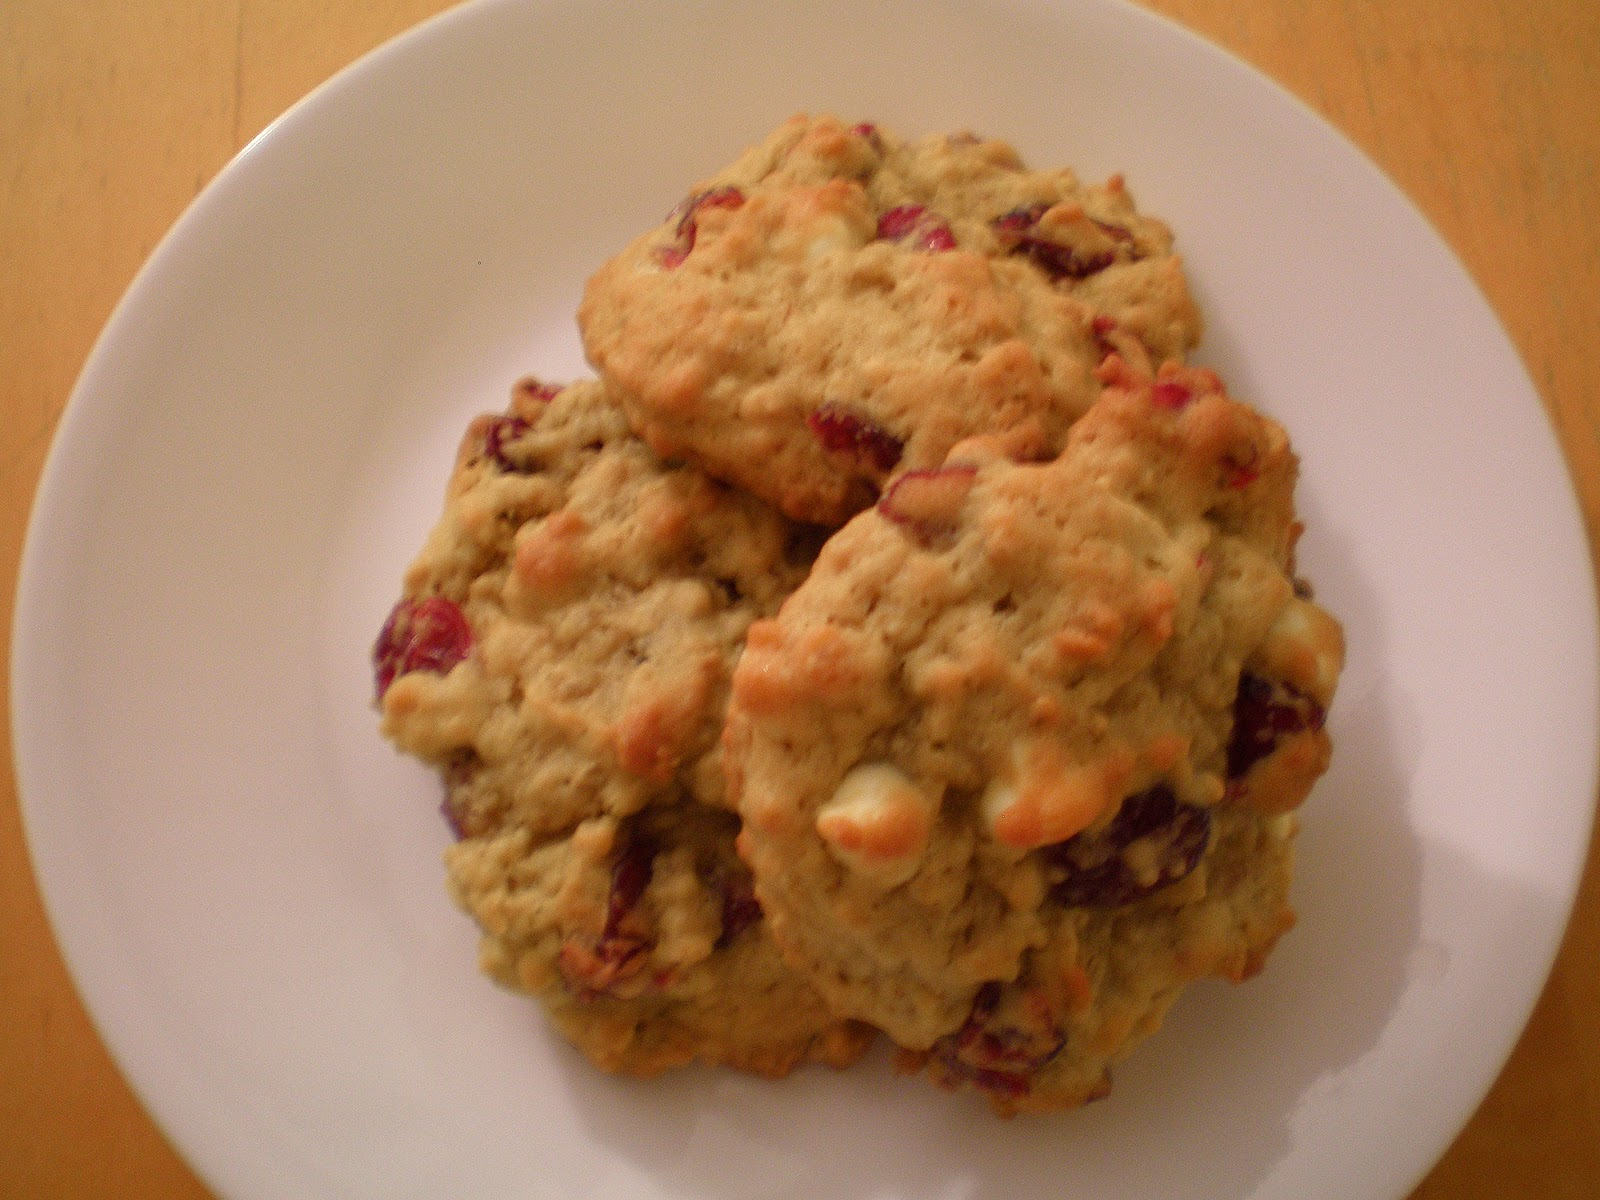 Basil Development: Oatmeal Cranberry White Chocolate Chunk Cookies